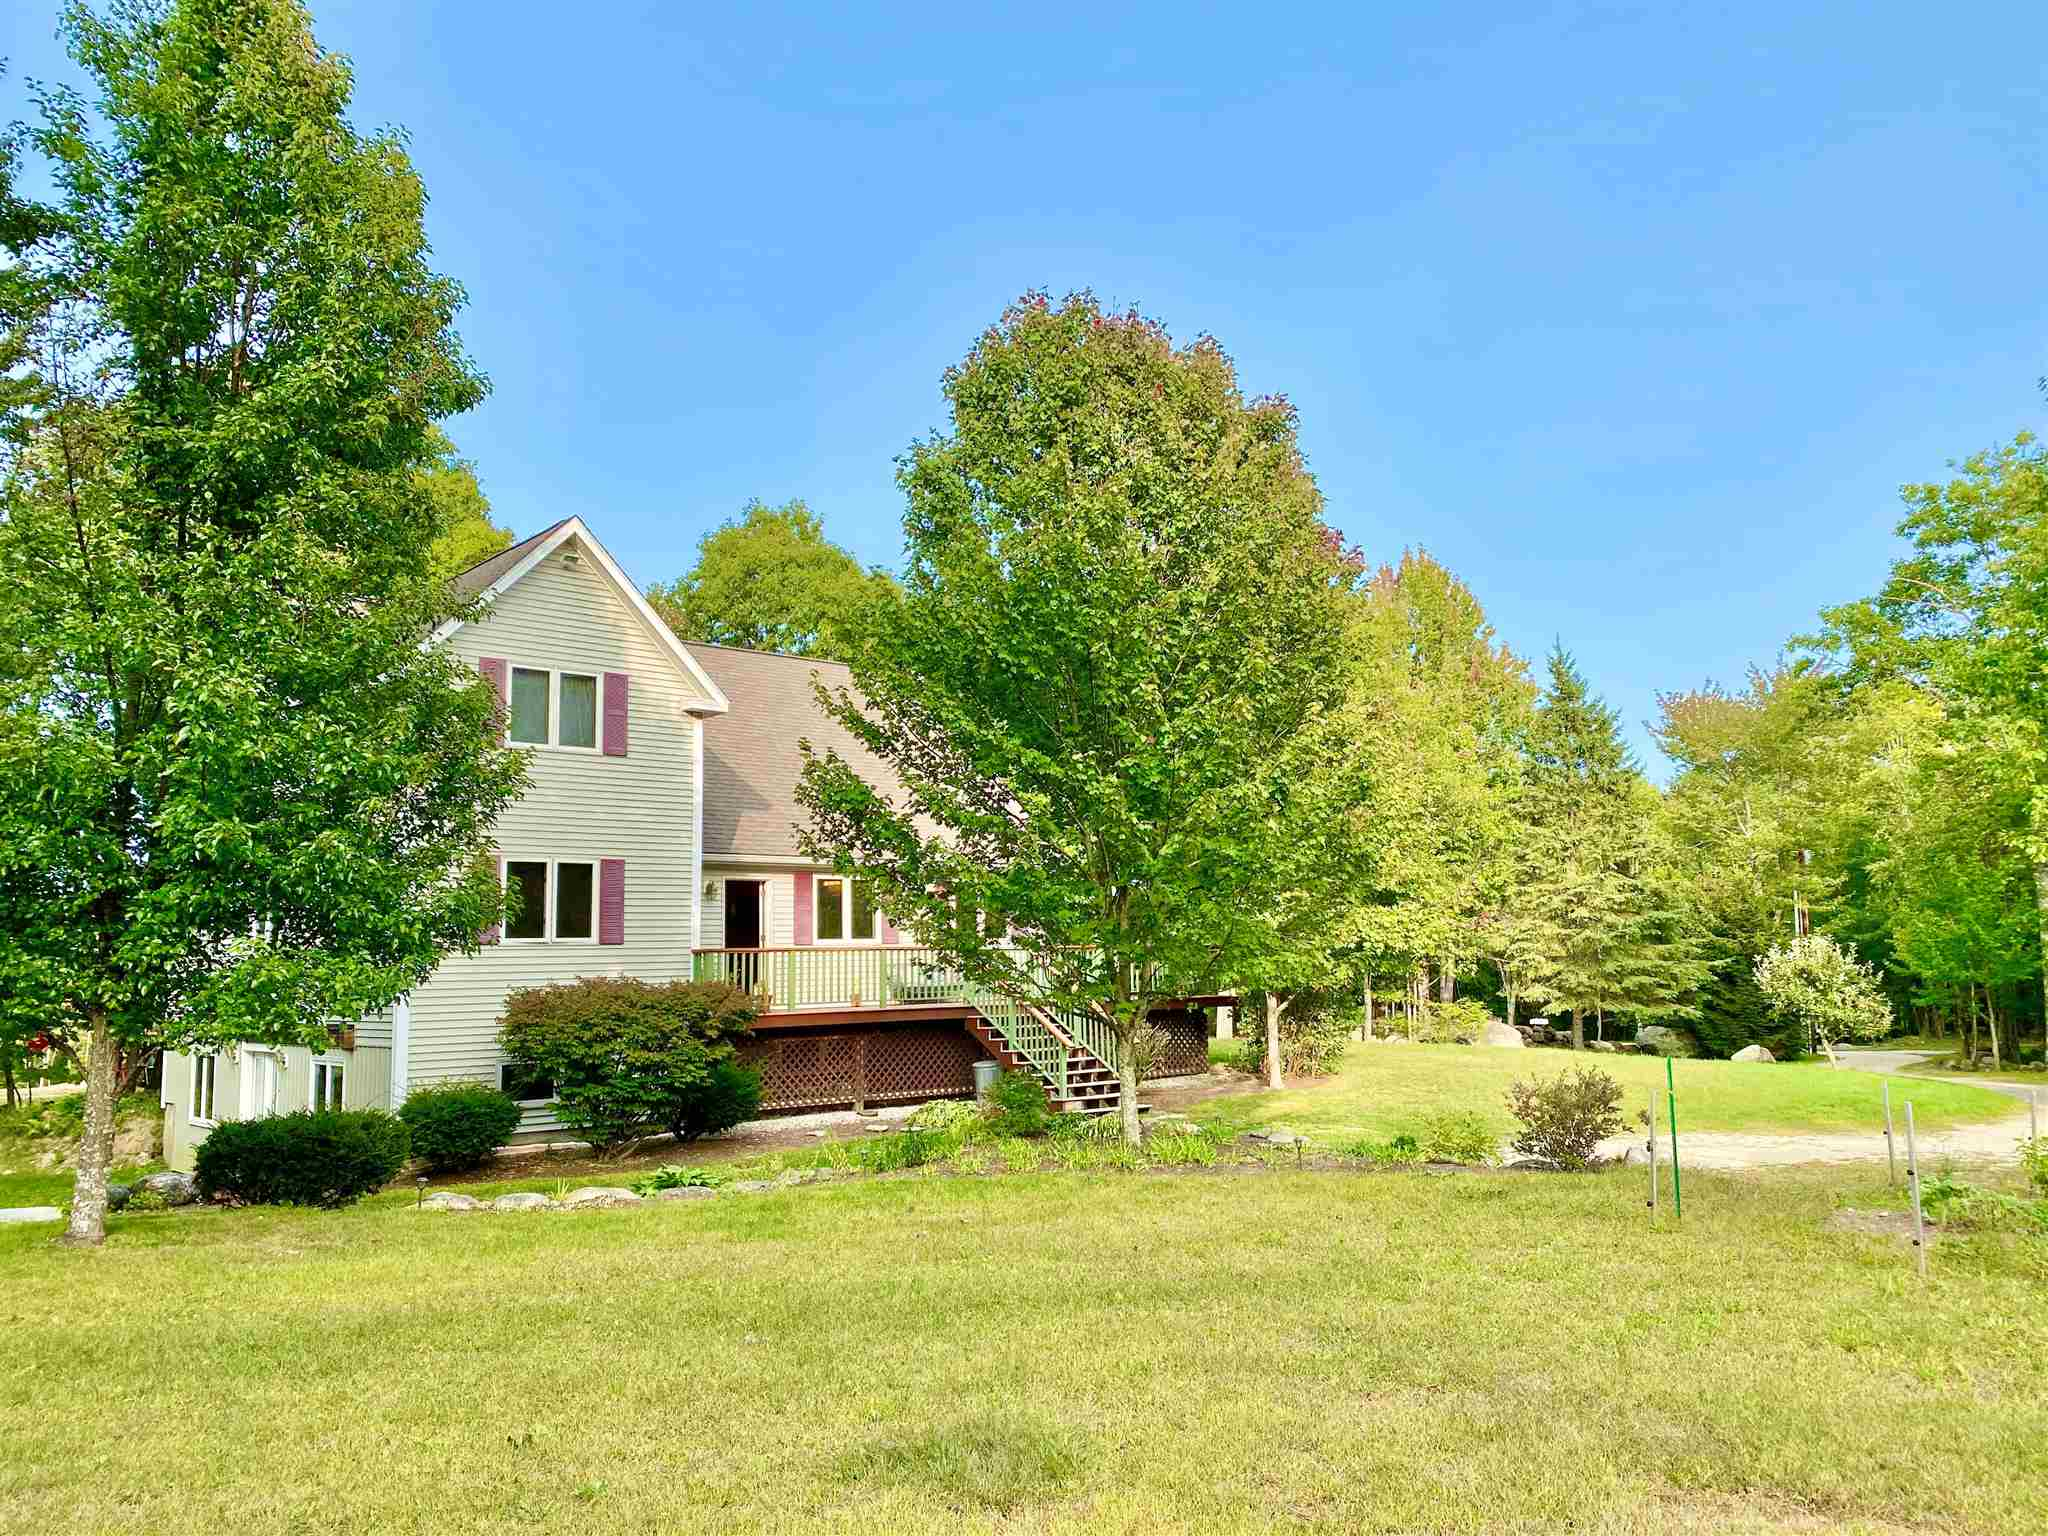 MLS 4828771: 193 Pedrick Road, Wilmot NH